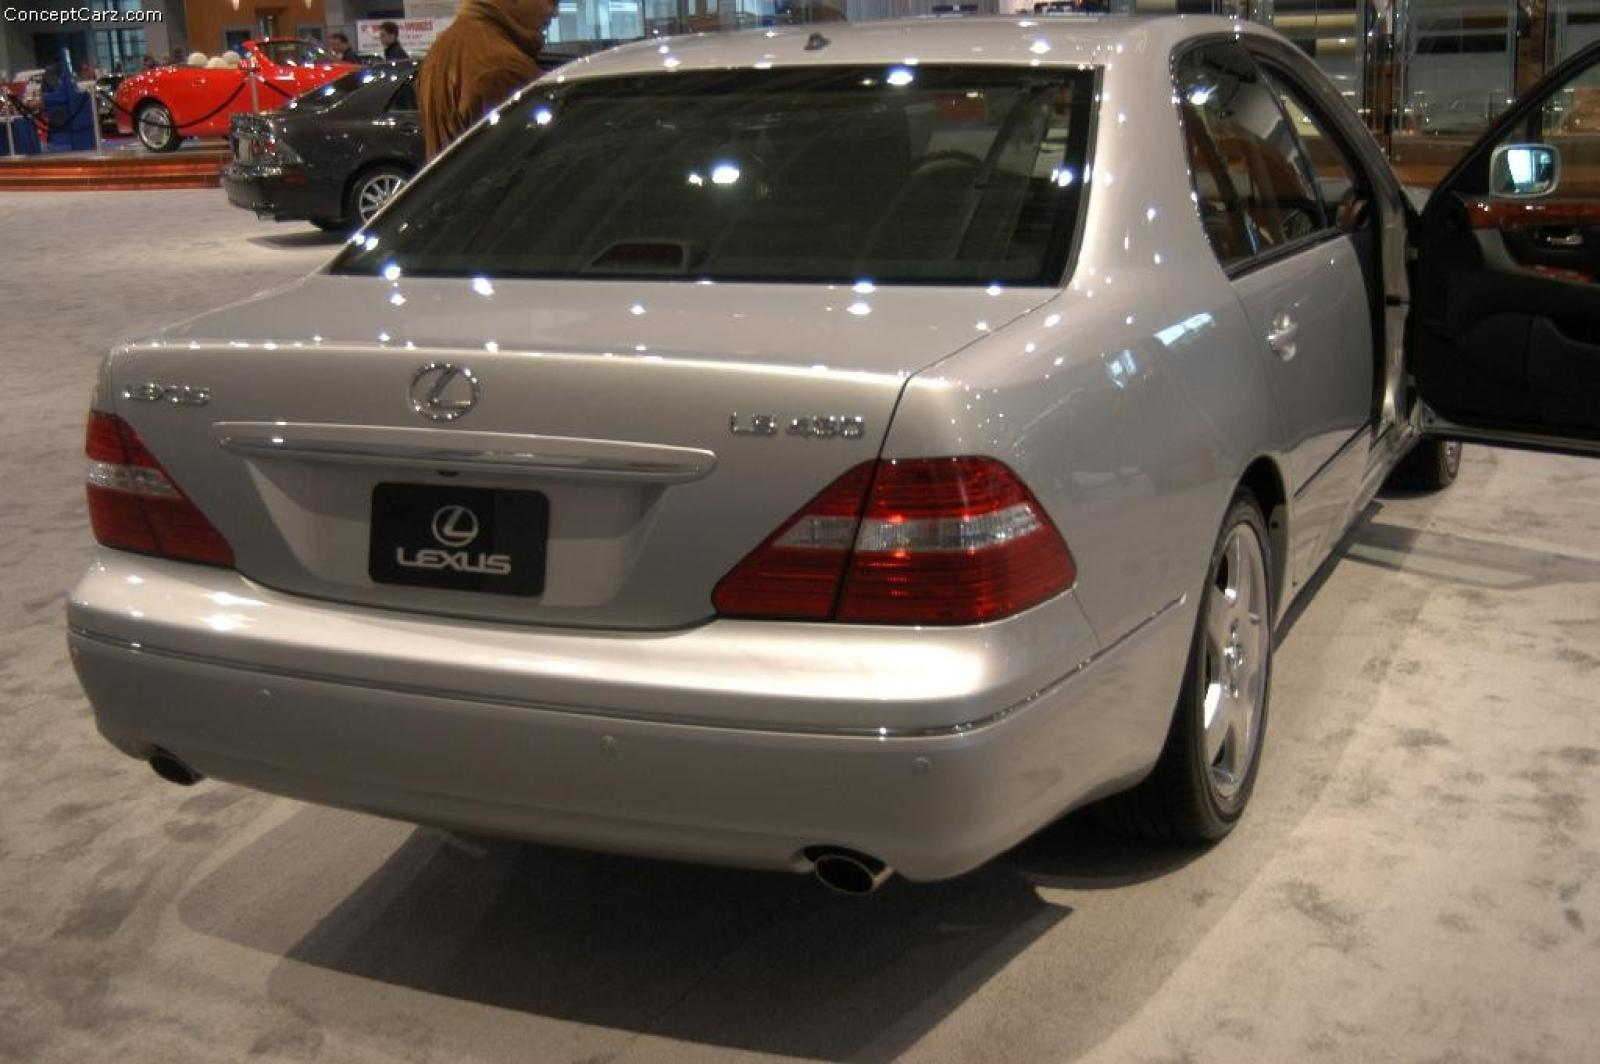 2004 Lexus LS 430 Information And Photos ZombieDrive